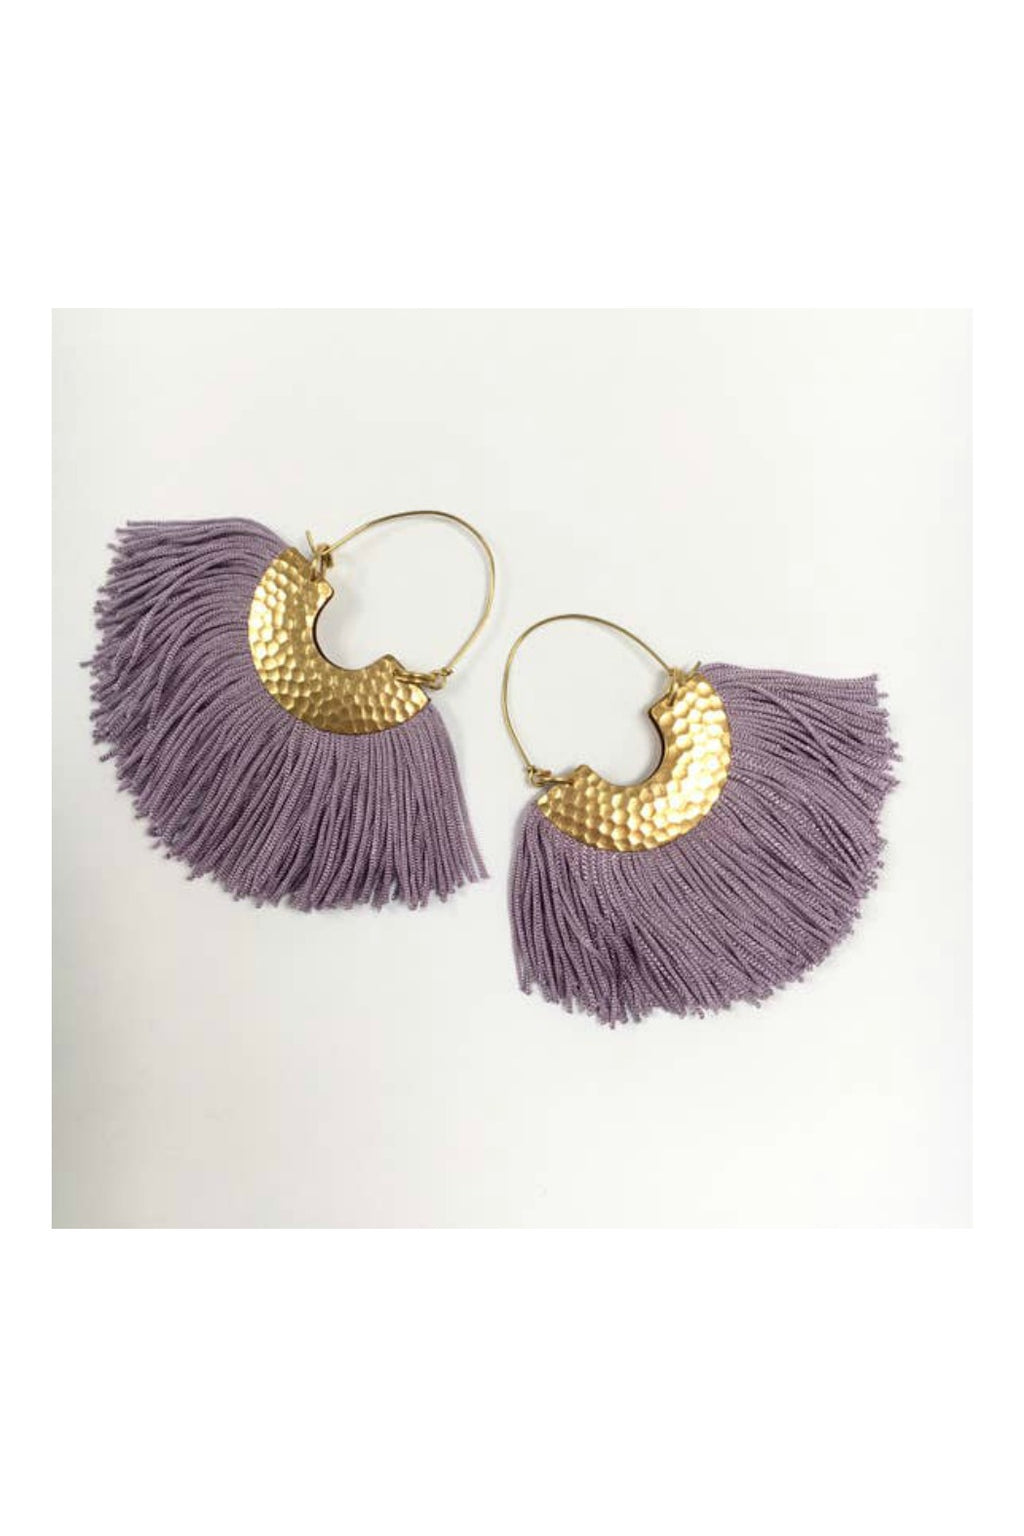 Odyssey & Oddities Lilac Fan Earrings